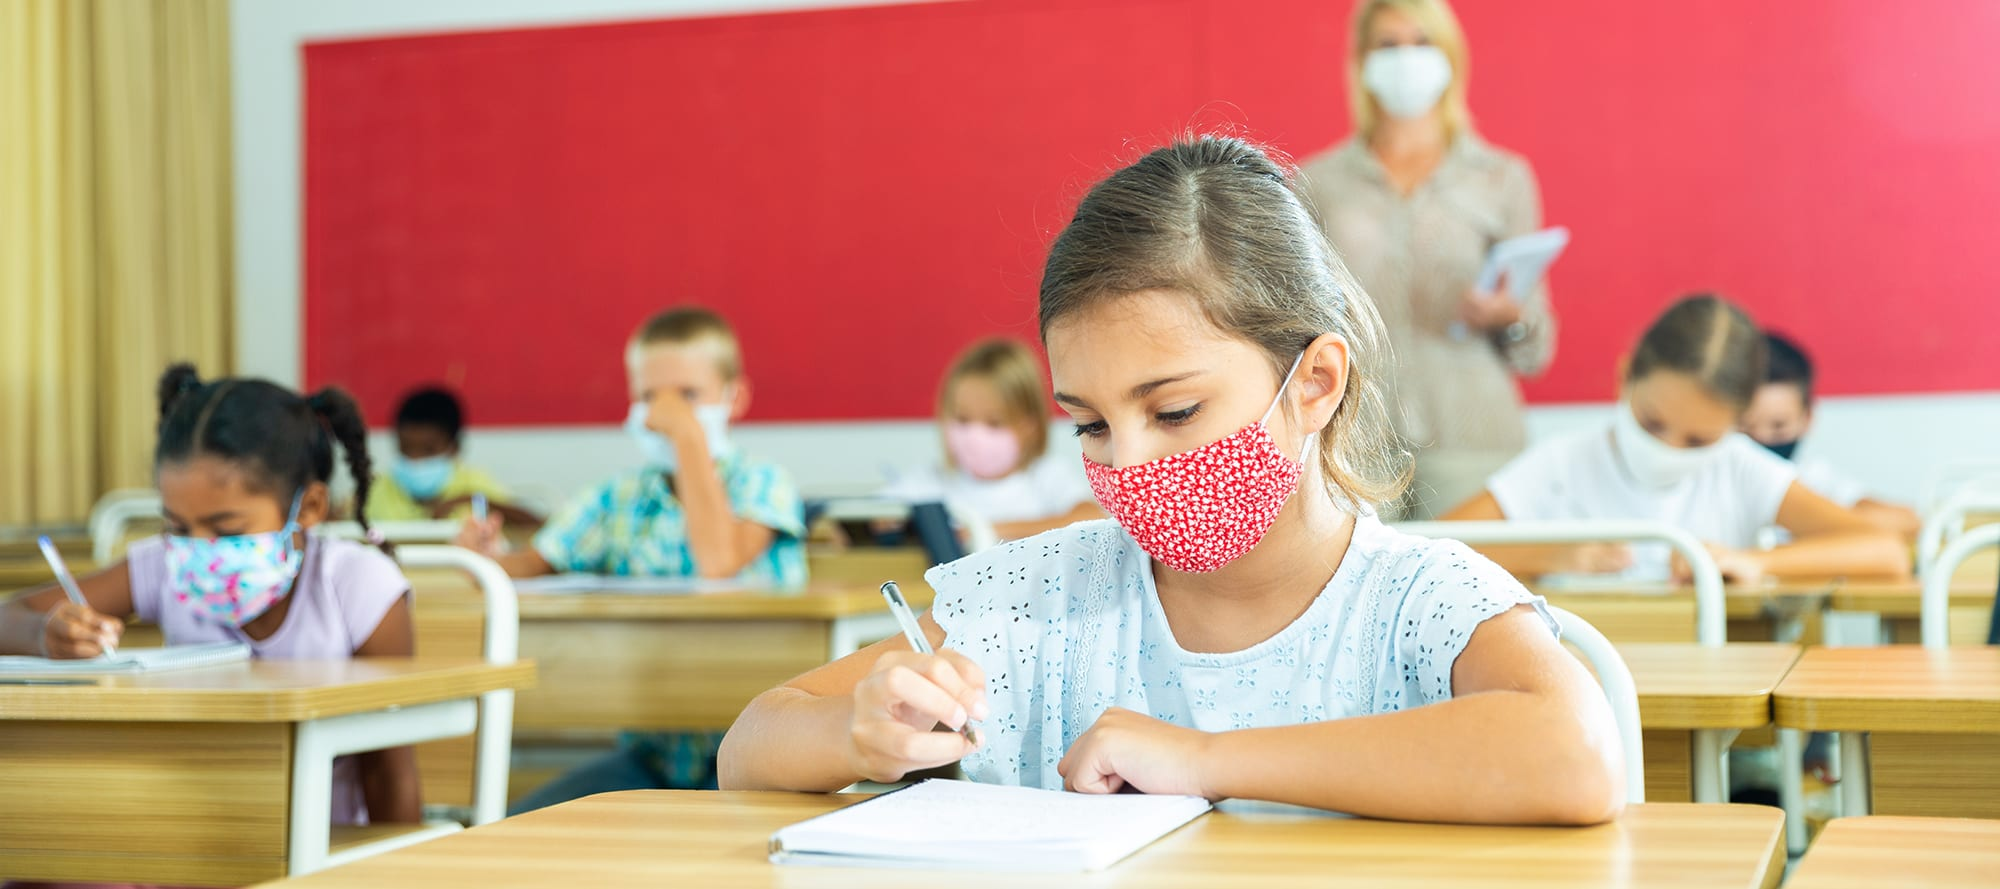 Child with medical mask sitting in classroom with classmates and teacher